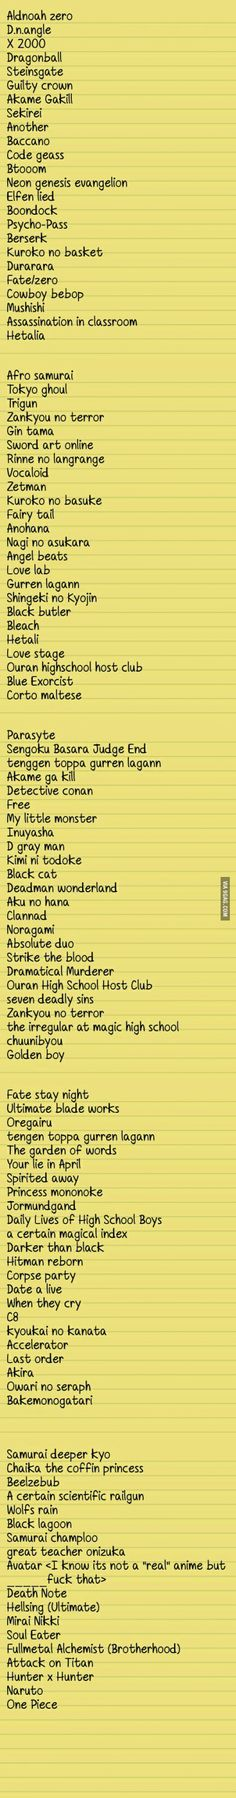 For all anime fans who don't know what to watch next...(Favorite List Fun)